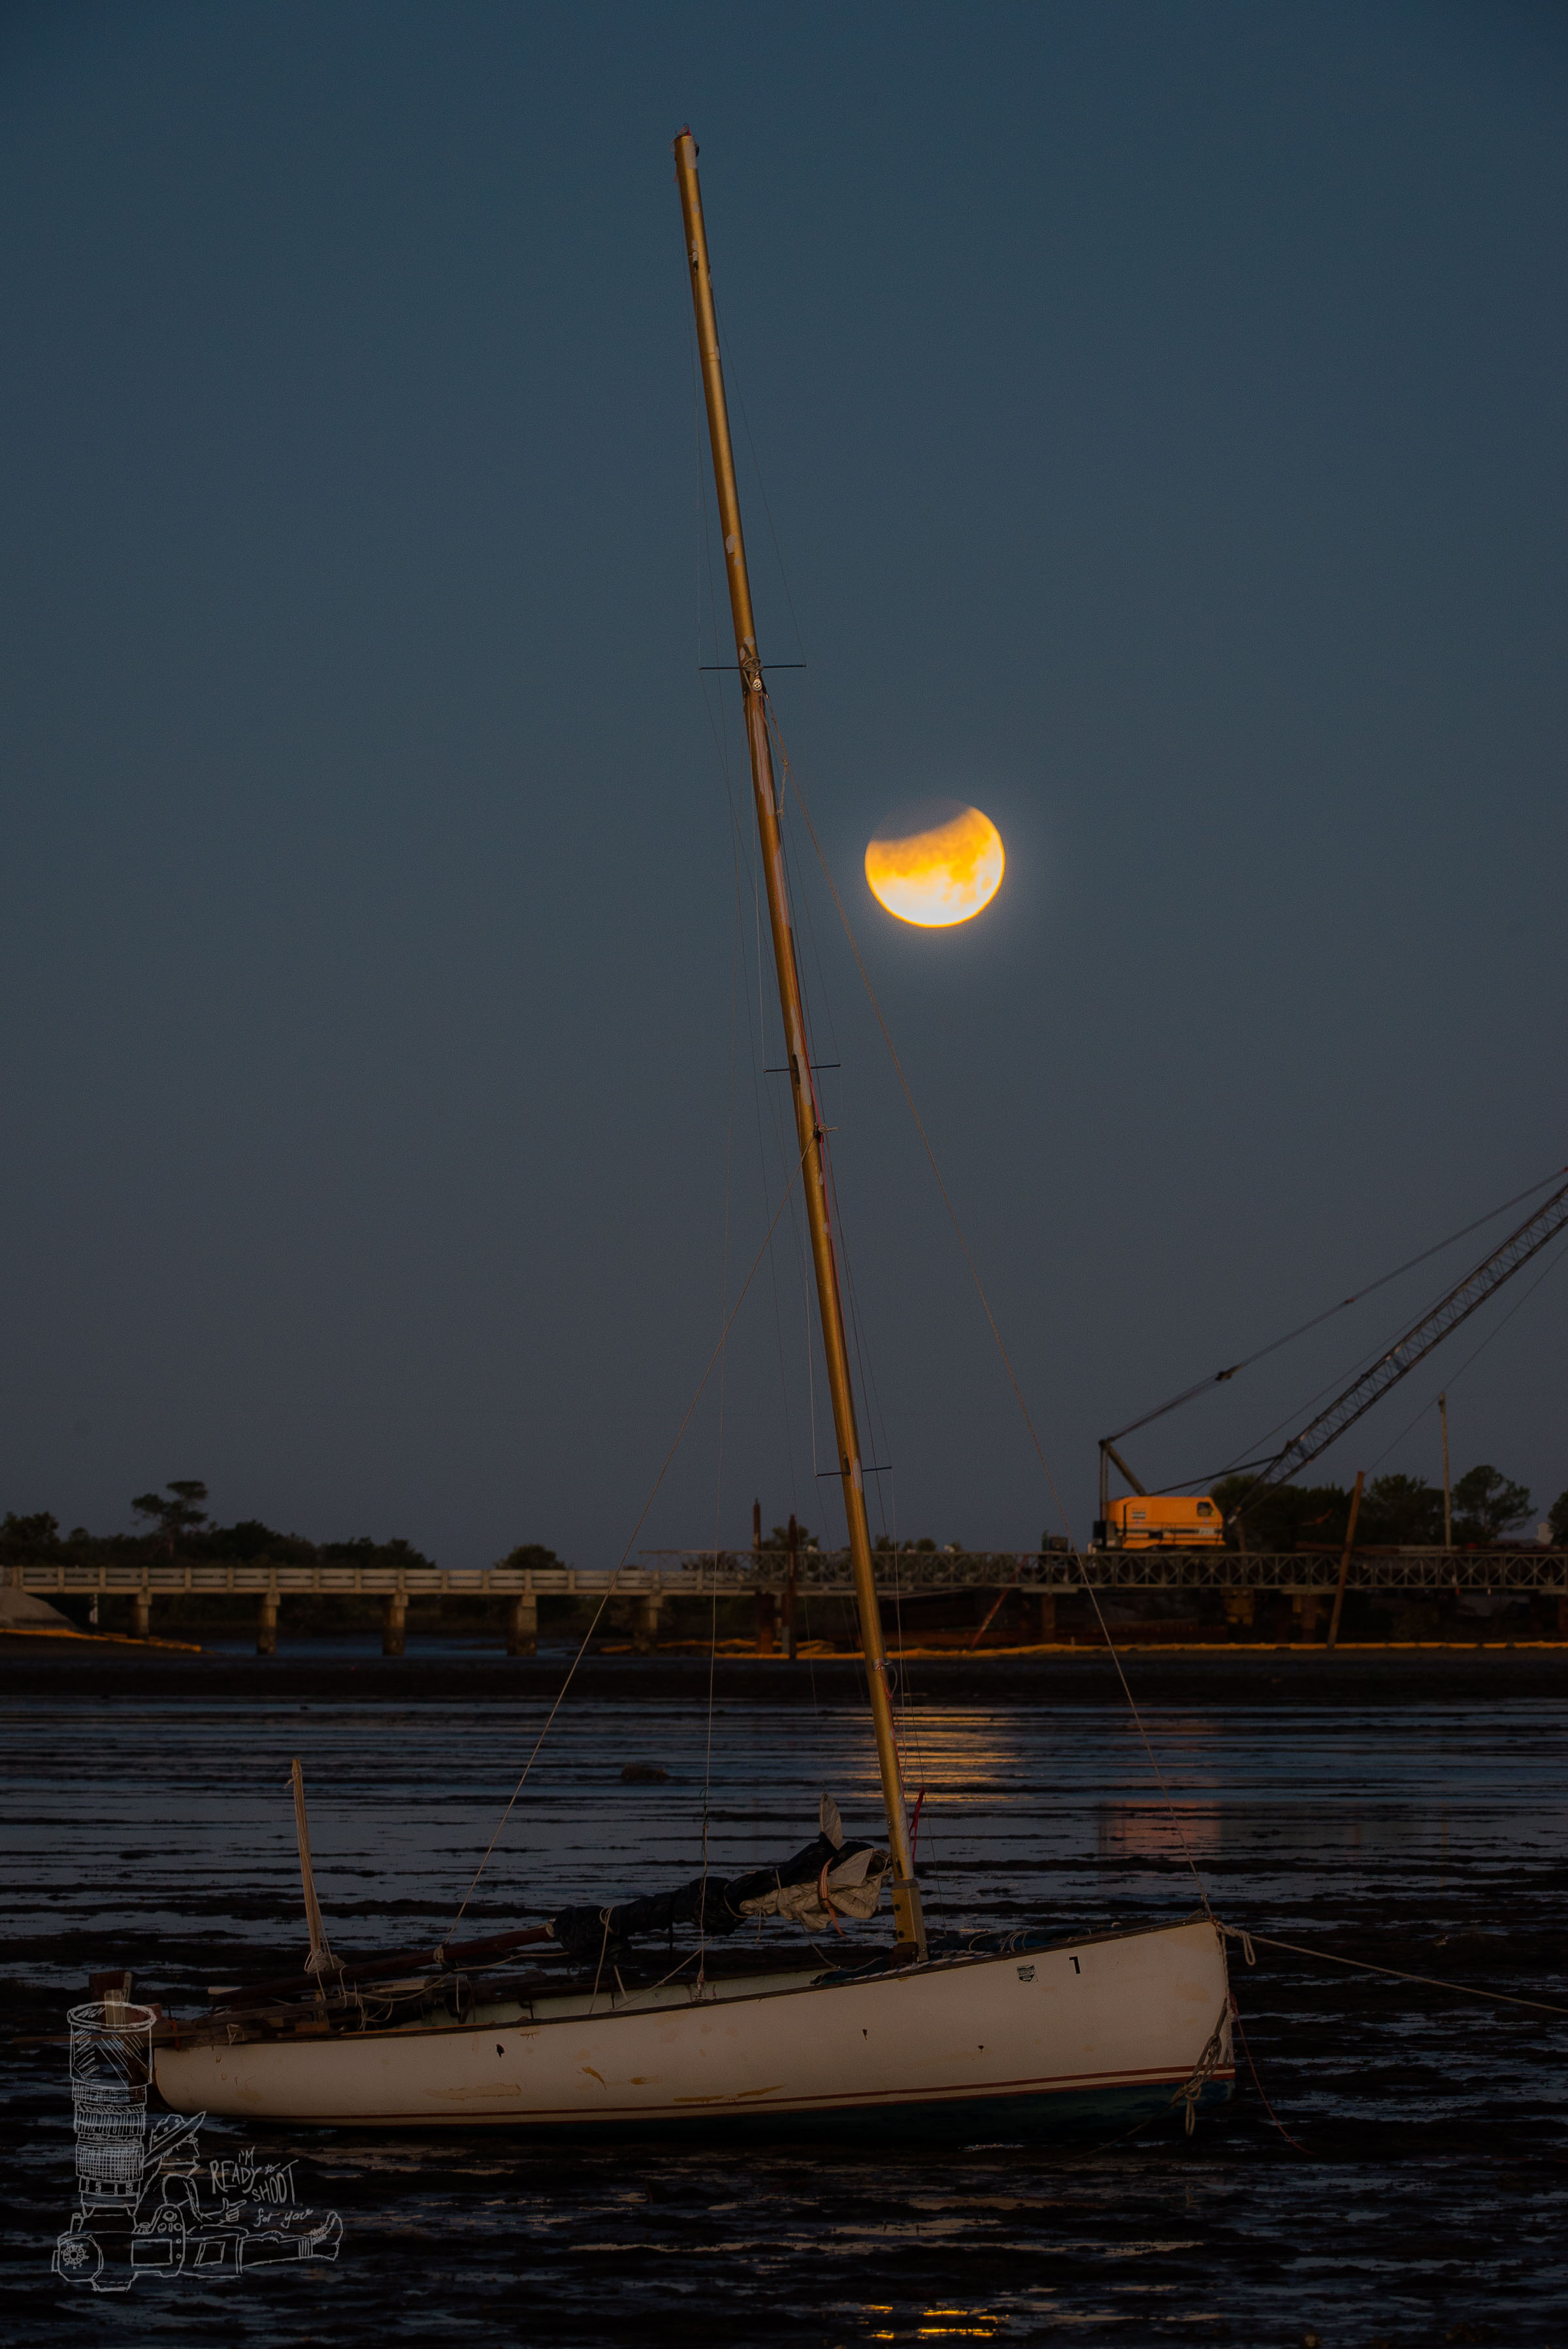 The Eclipse & the Sailboat.jpg